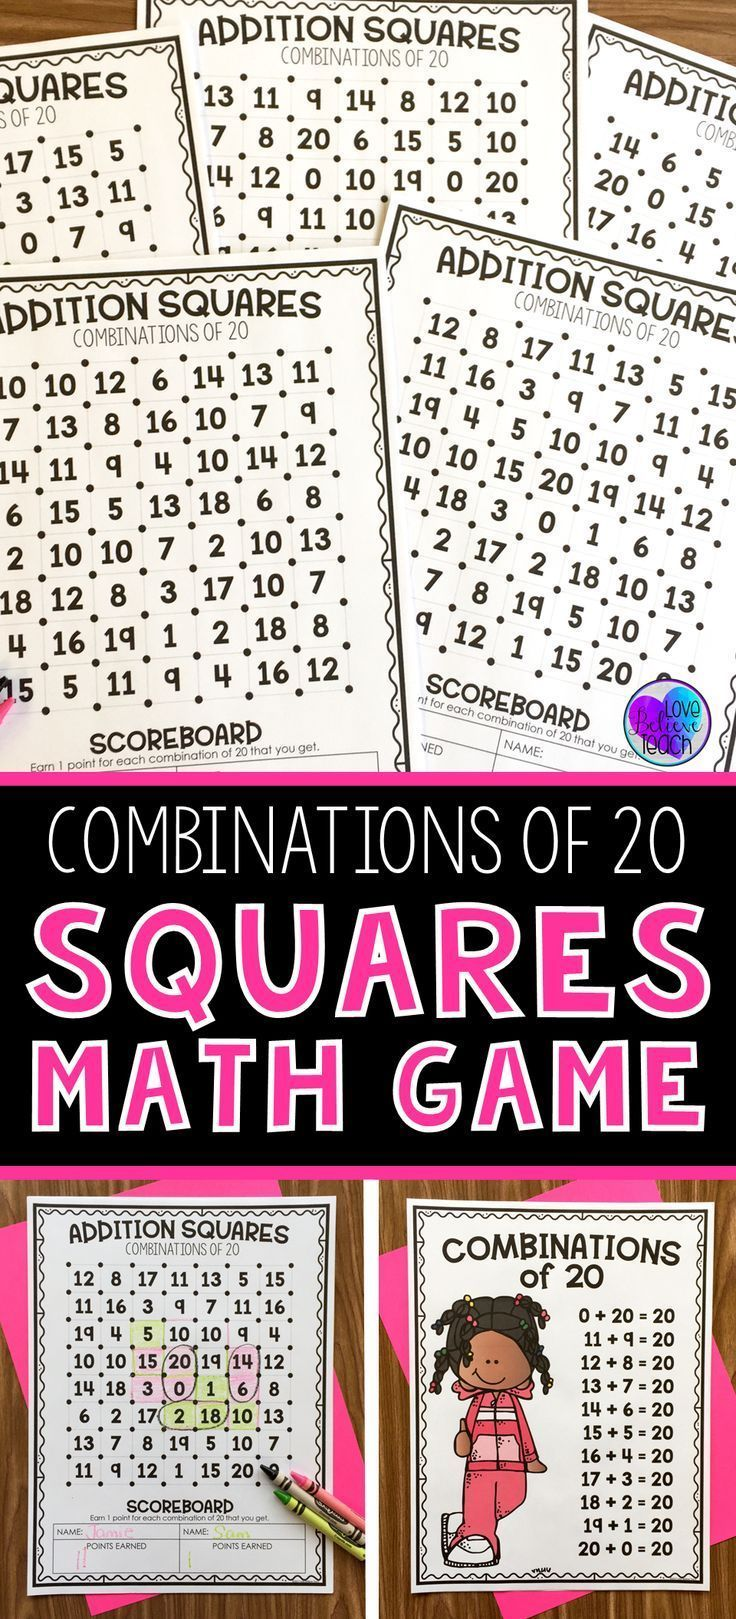 Help Improve Your First Grade Second Grade And Third Grade Students Fact Fluency By Practicing Combinations Of 20 Math Math Games Math Rotations Math Facts Free printable addition squares game